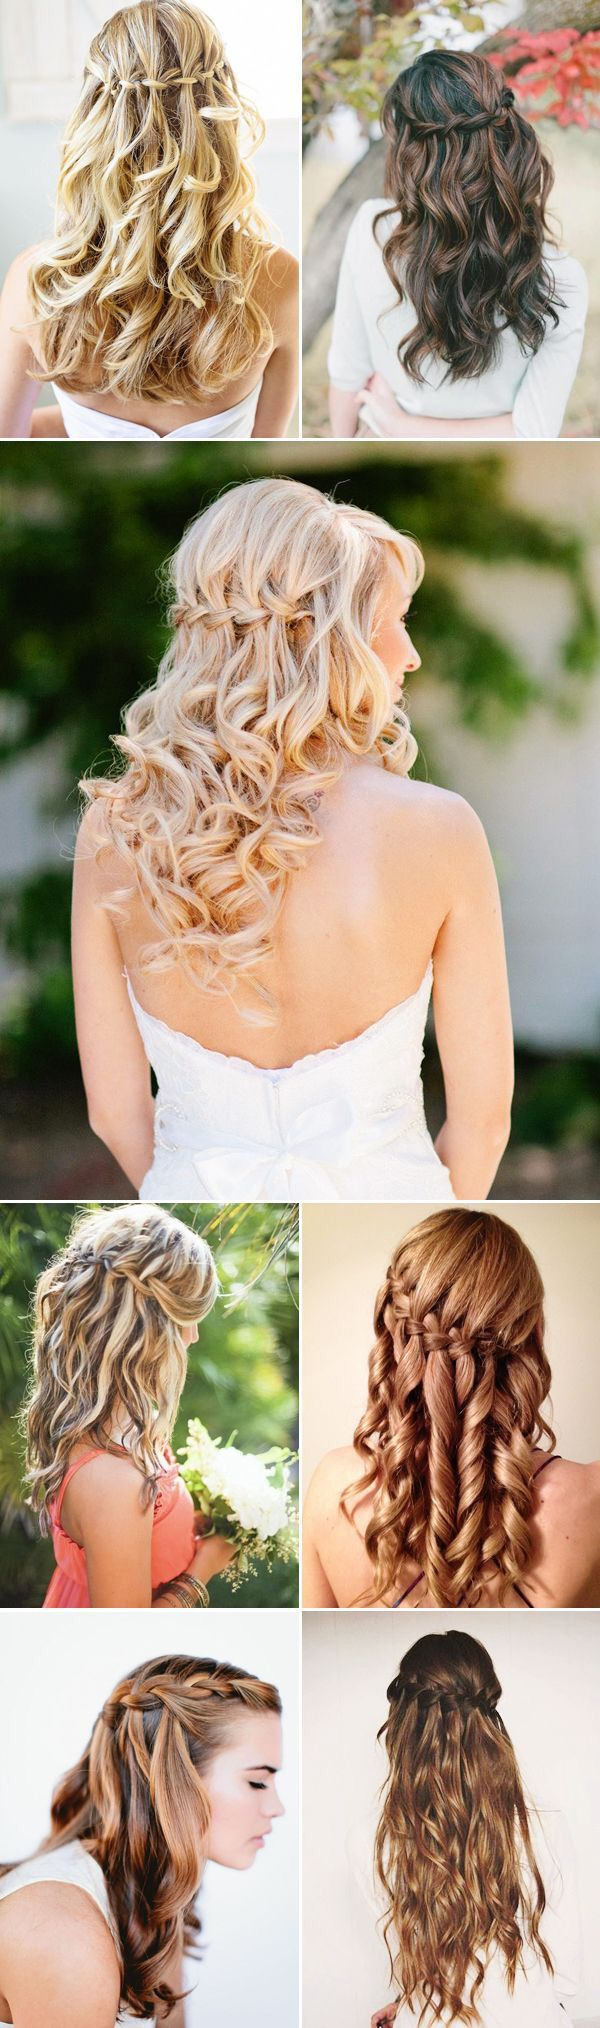 best prom hair images on pinterest wedding hair styles